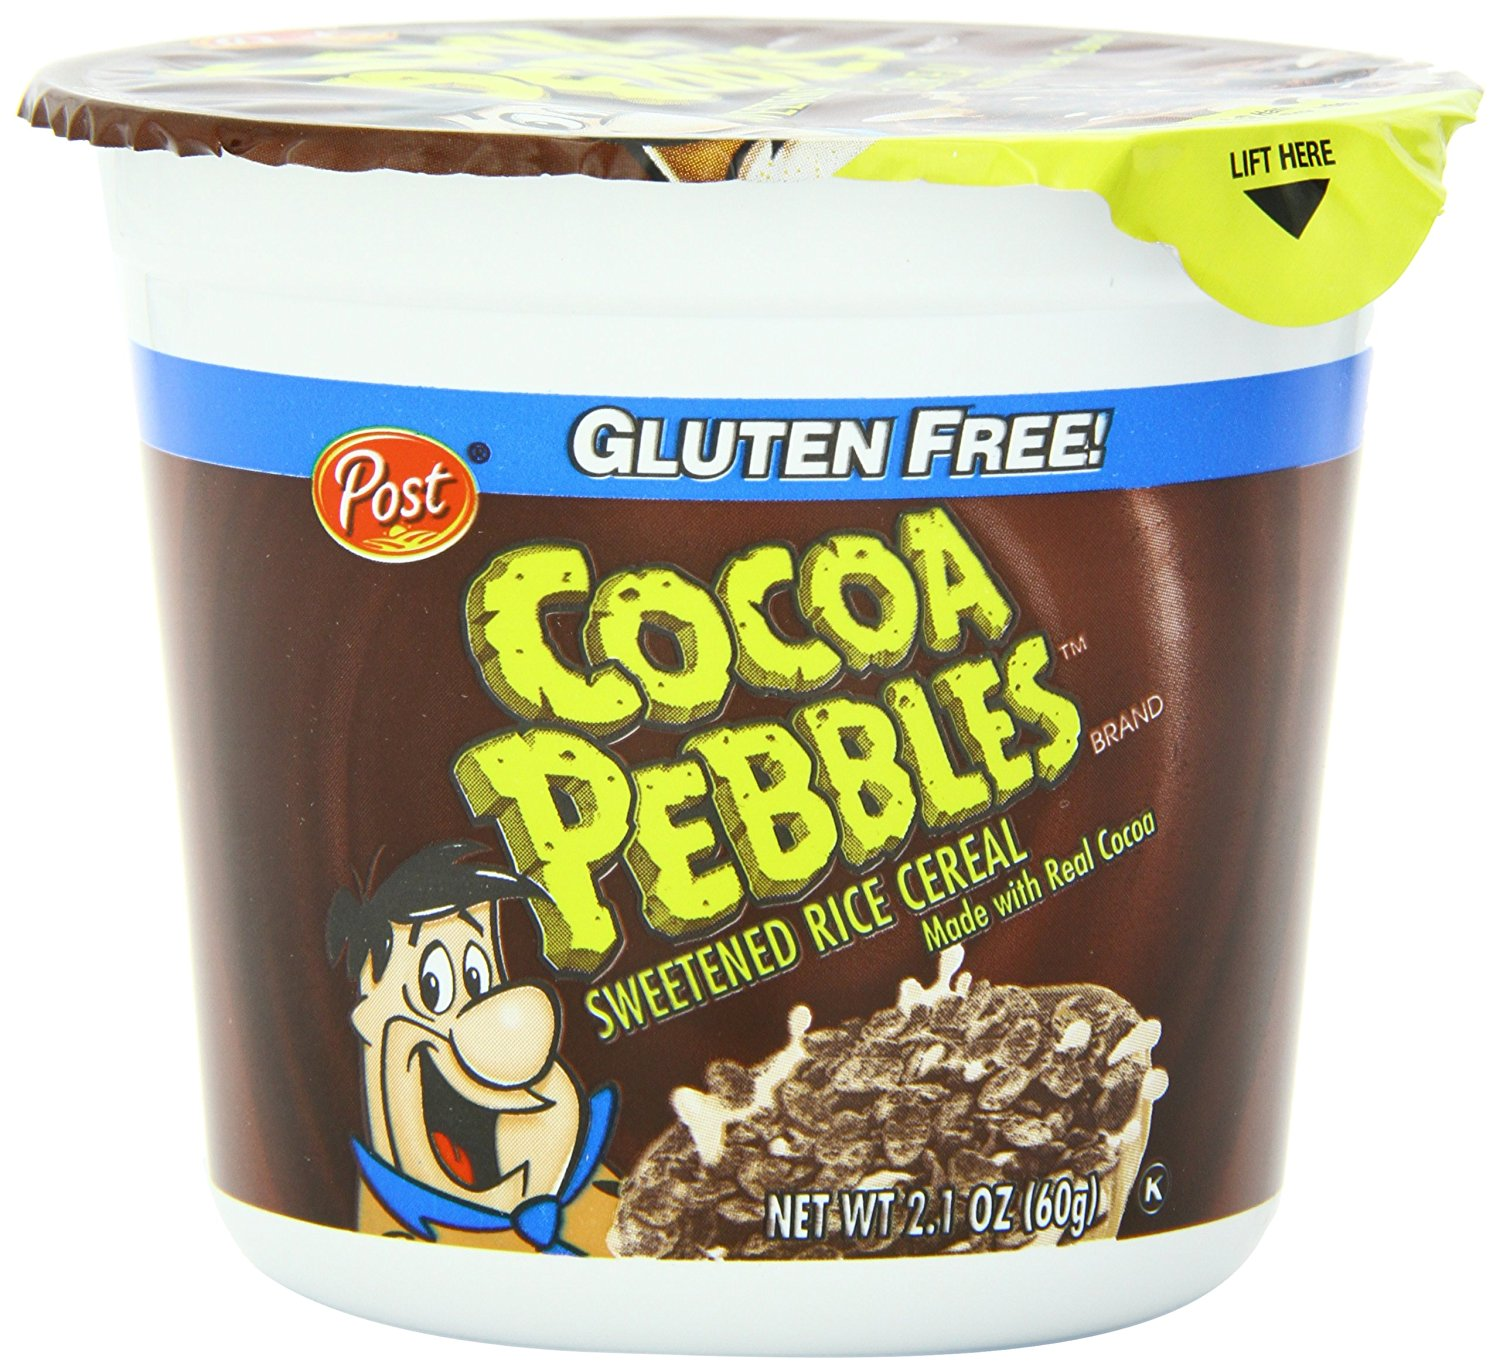 Post Cocoa Pebbles Cereal, Chocolate, 2.1 Oz, Cup (Pack of 4)